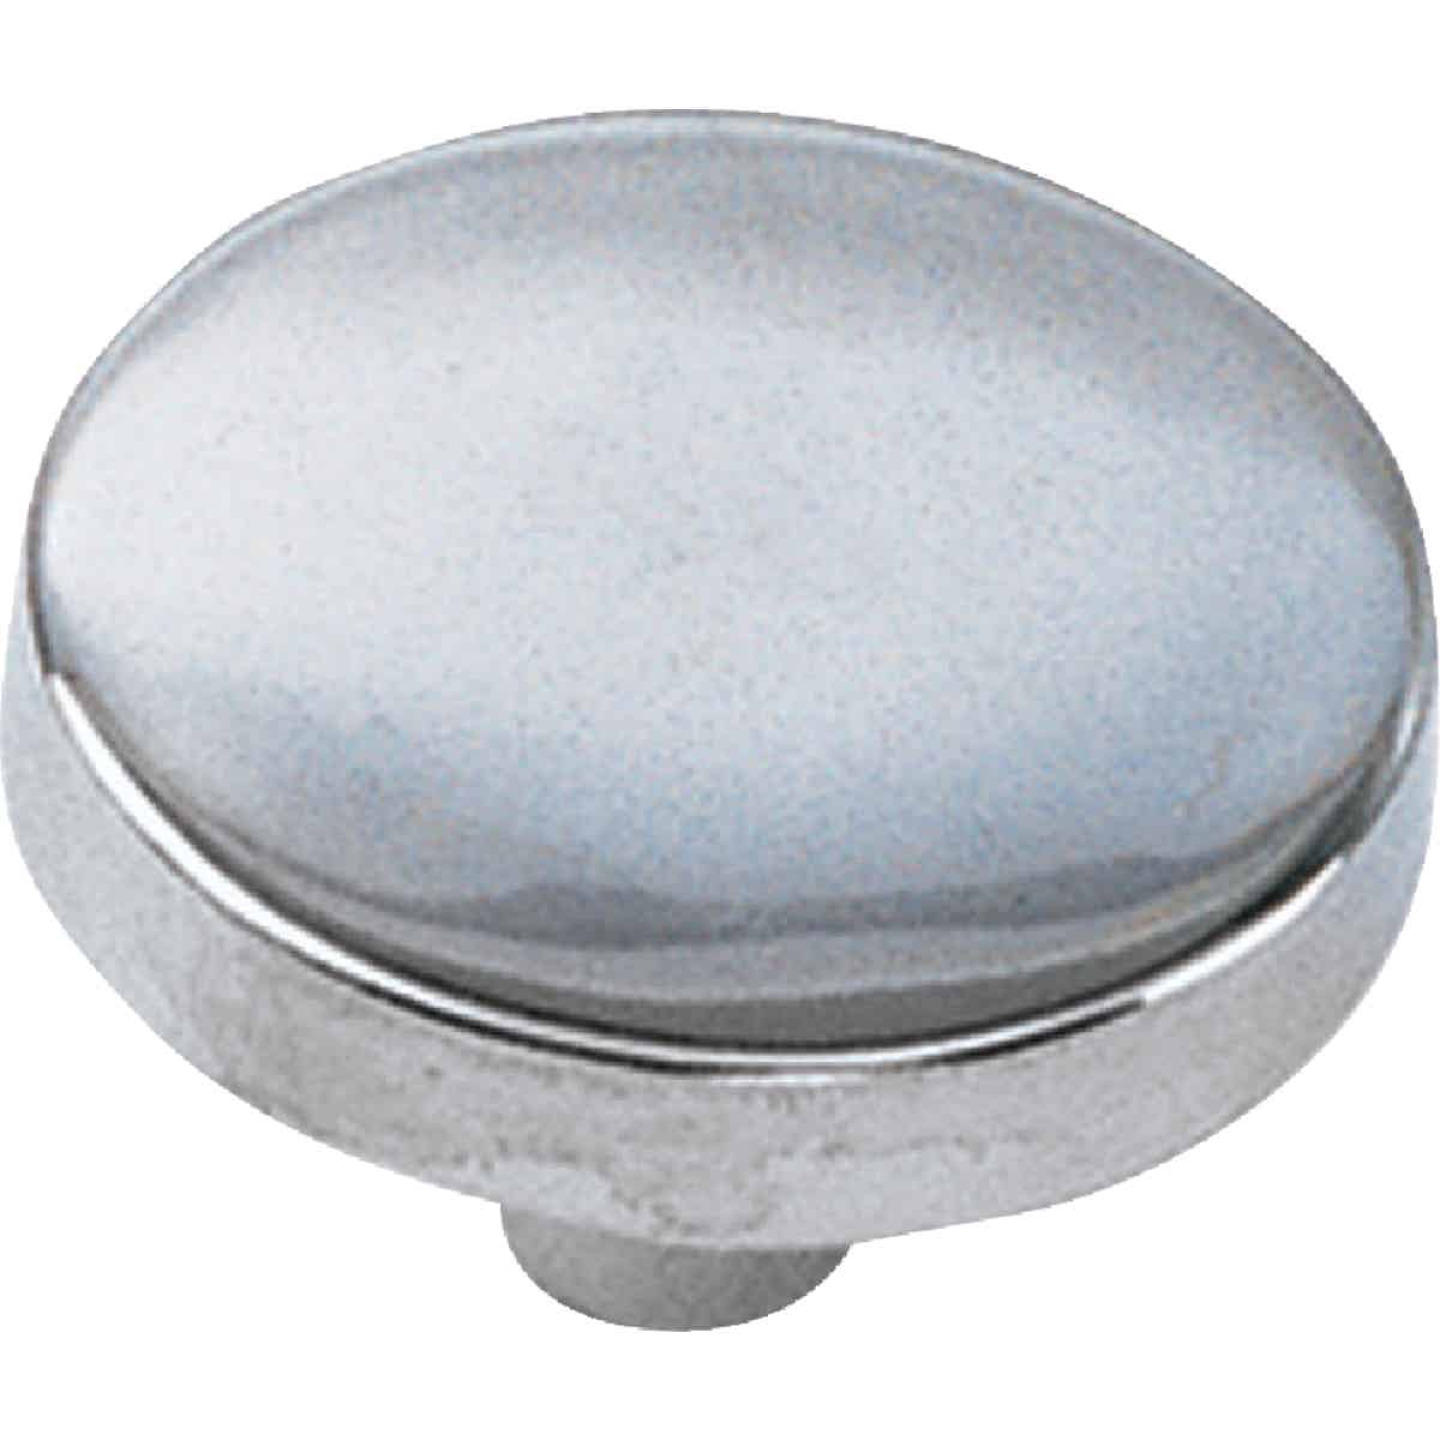 Laurey Chrome 1-1/4 In. Cabinet Knob Image 1